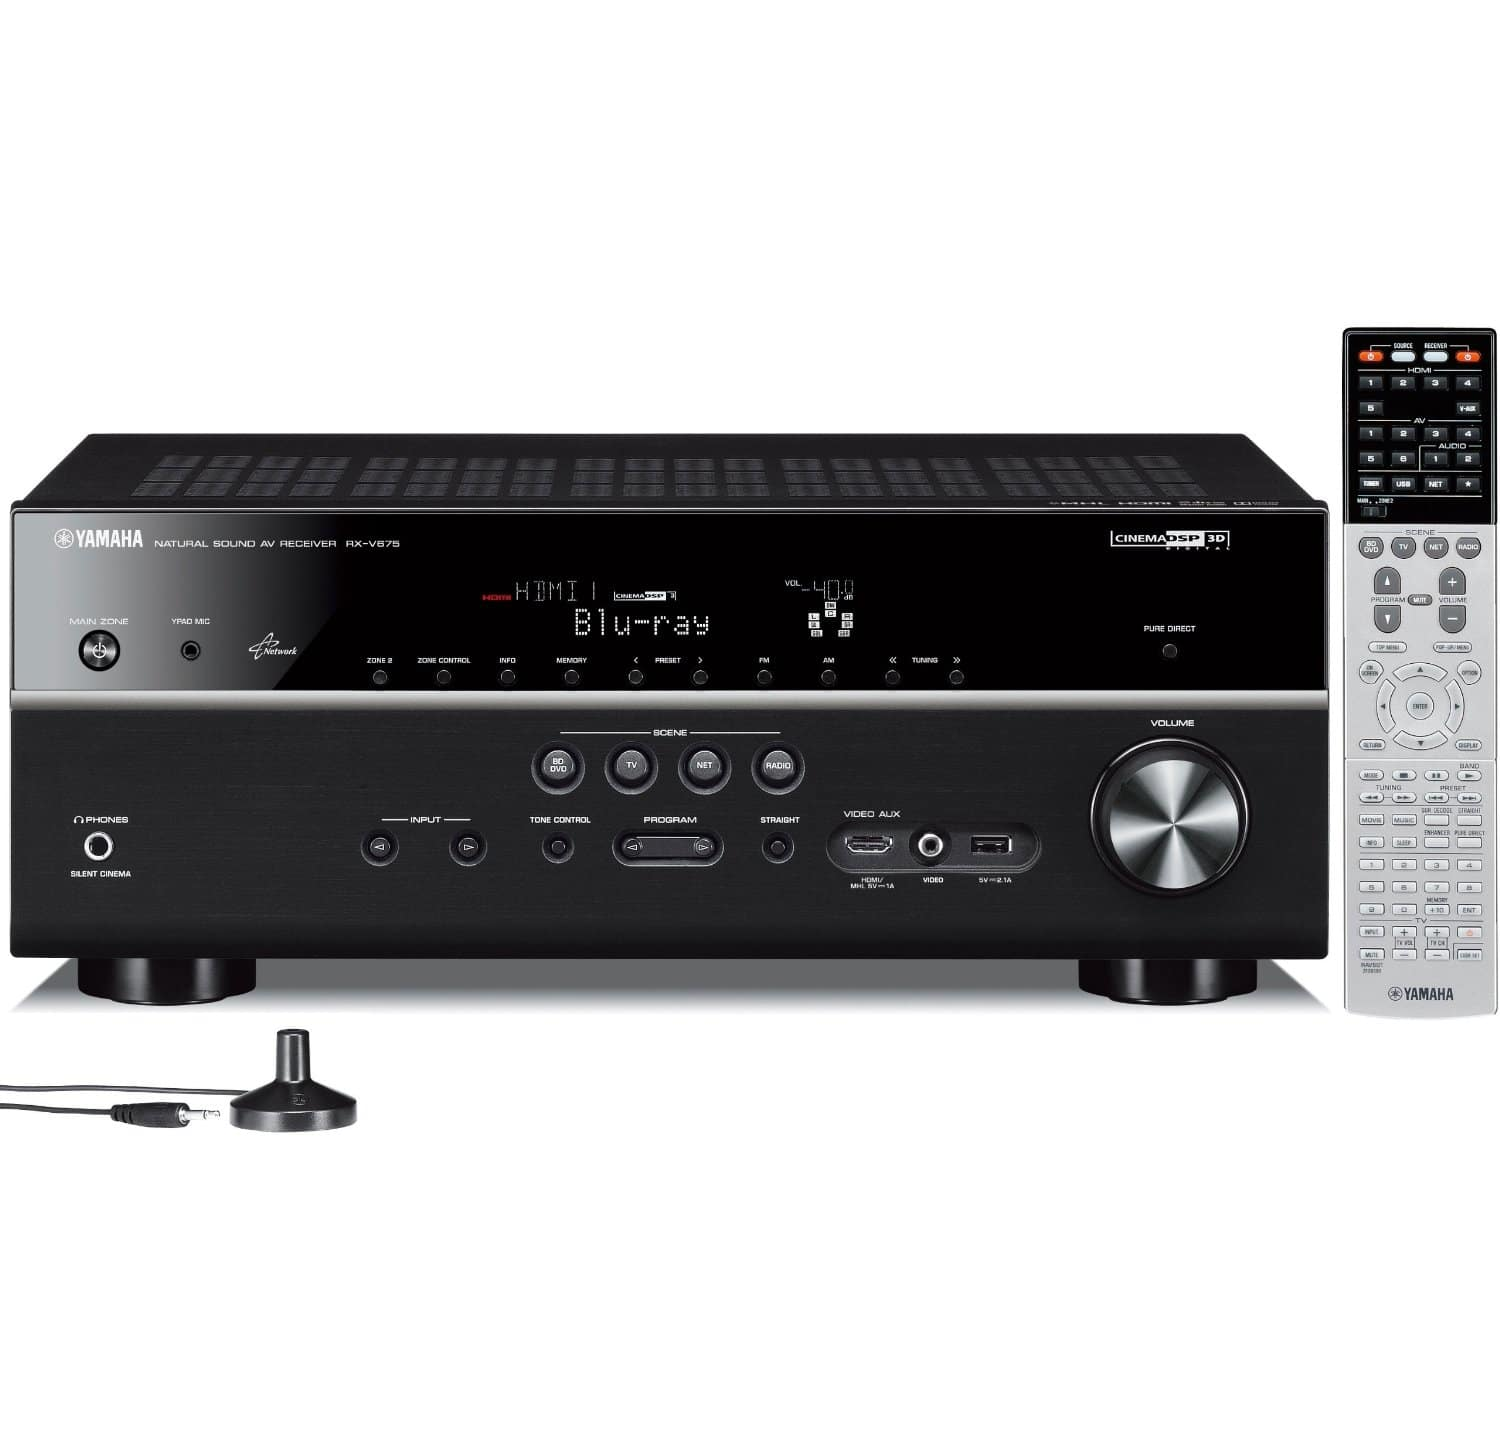 Yamaha RX-V675 7.2-Channel Network AV Receiver w/ Airplay $299.95 + Free Shipping